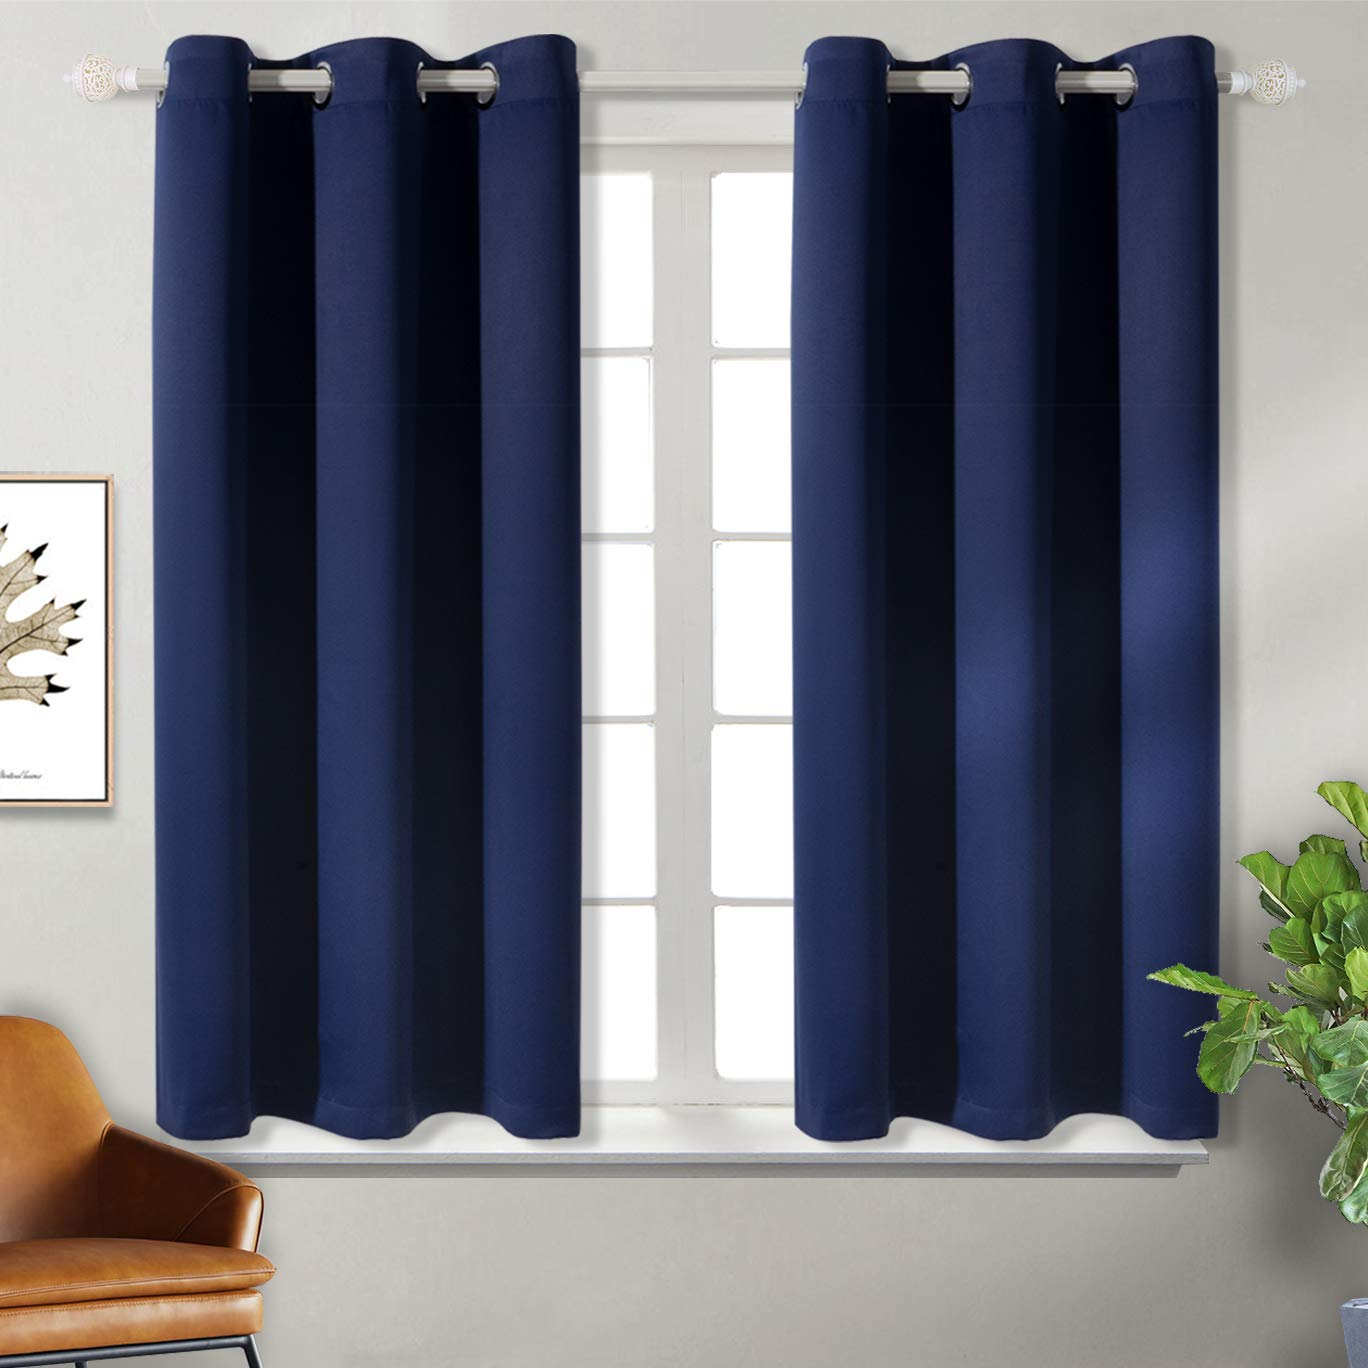 BGment Blackout Curtains for Bedroom - Grommet Thermal Insulated Room Darkening Curtains for Living Room, Set of 2 Panels (38 x 45 Inch, Navy Blue)